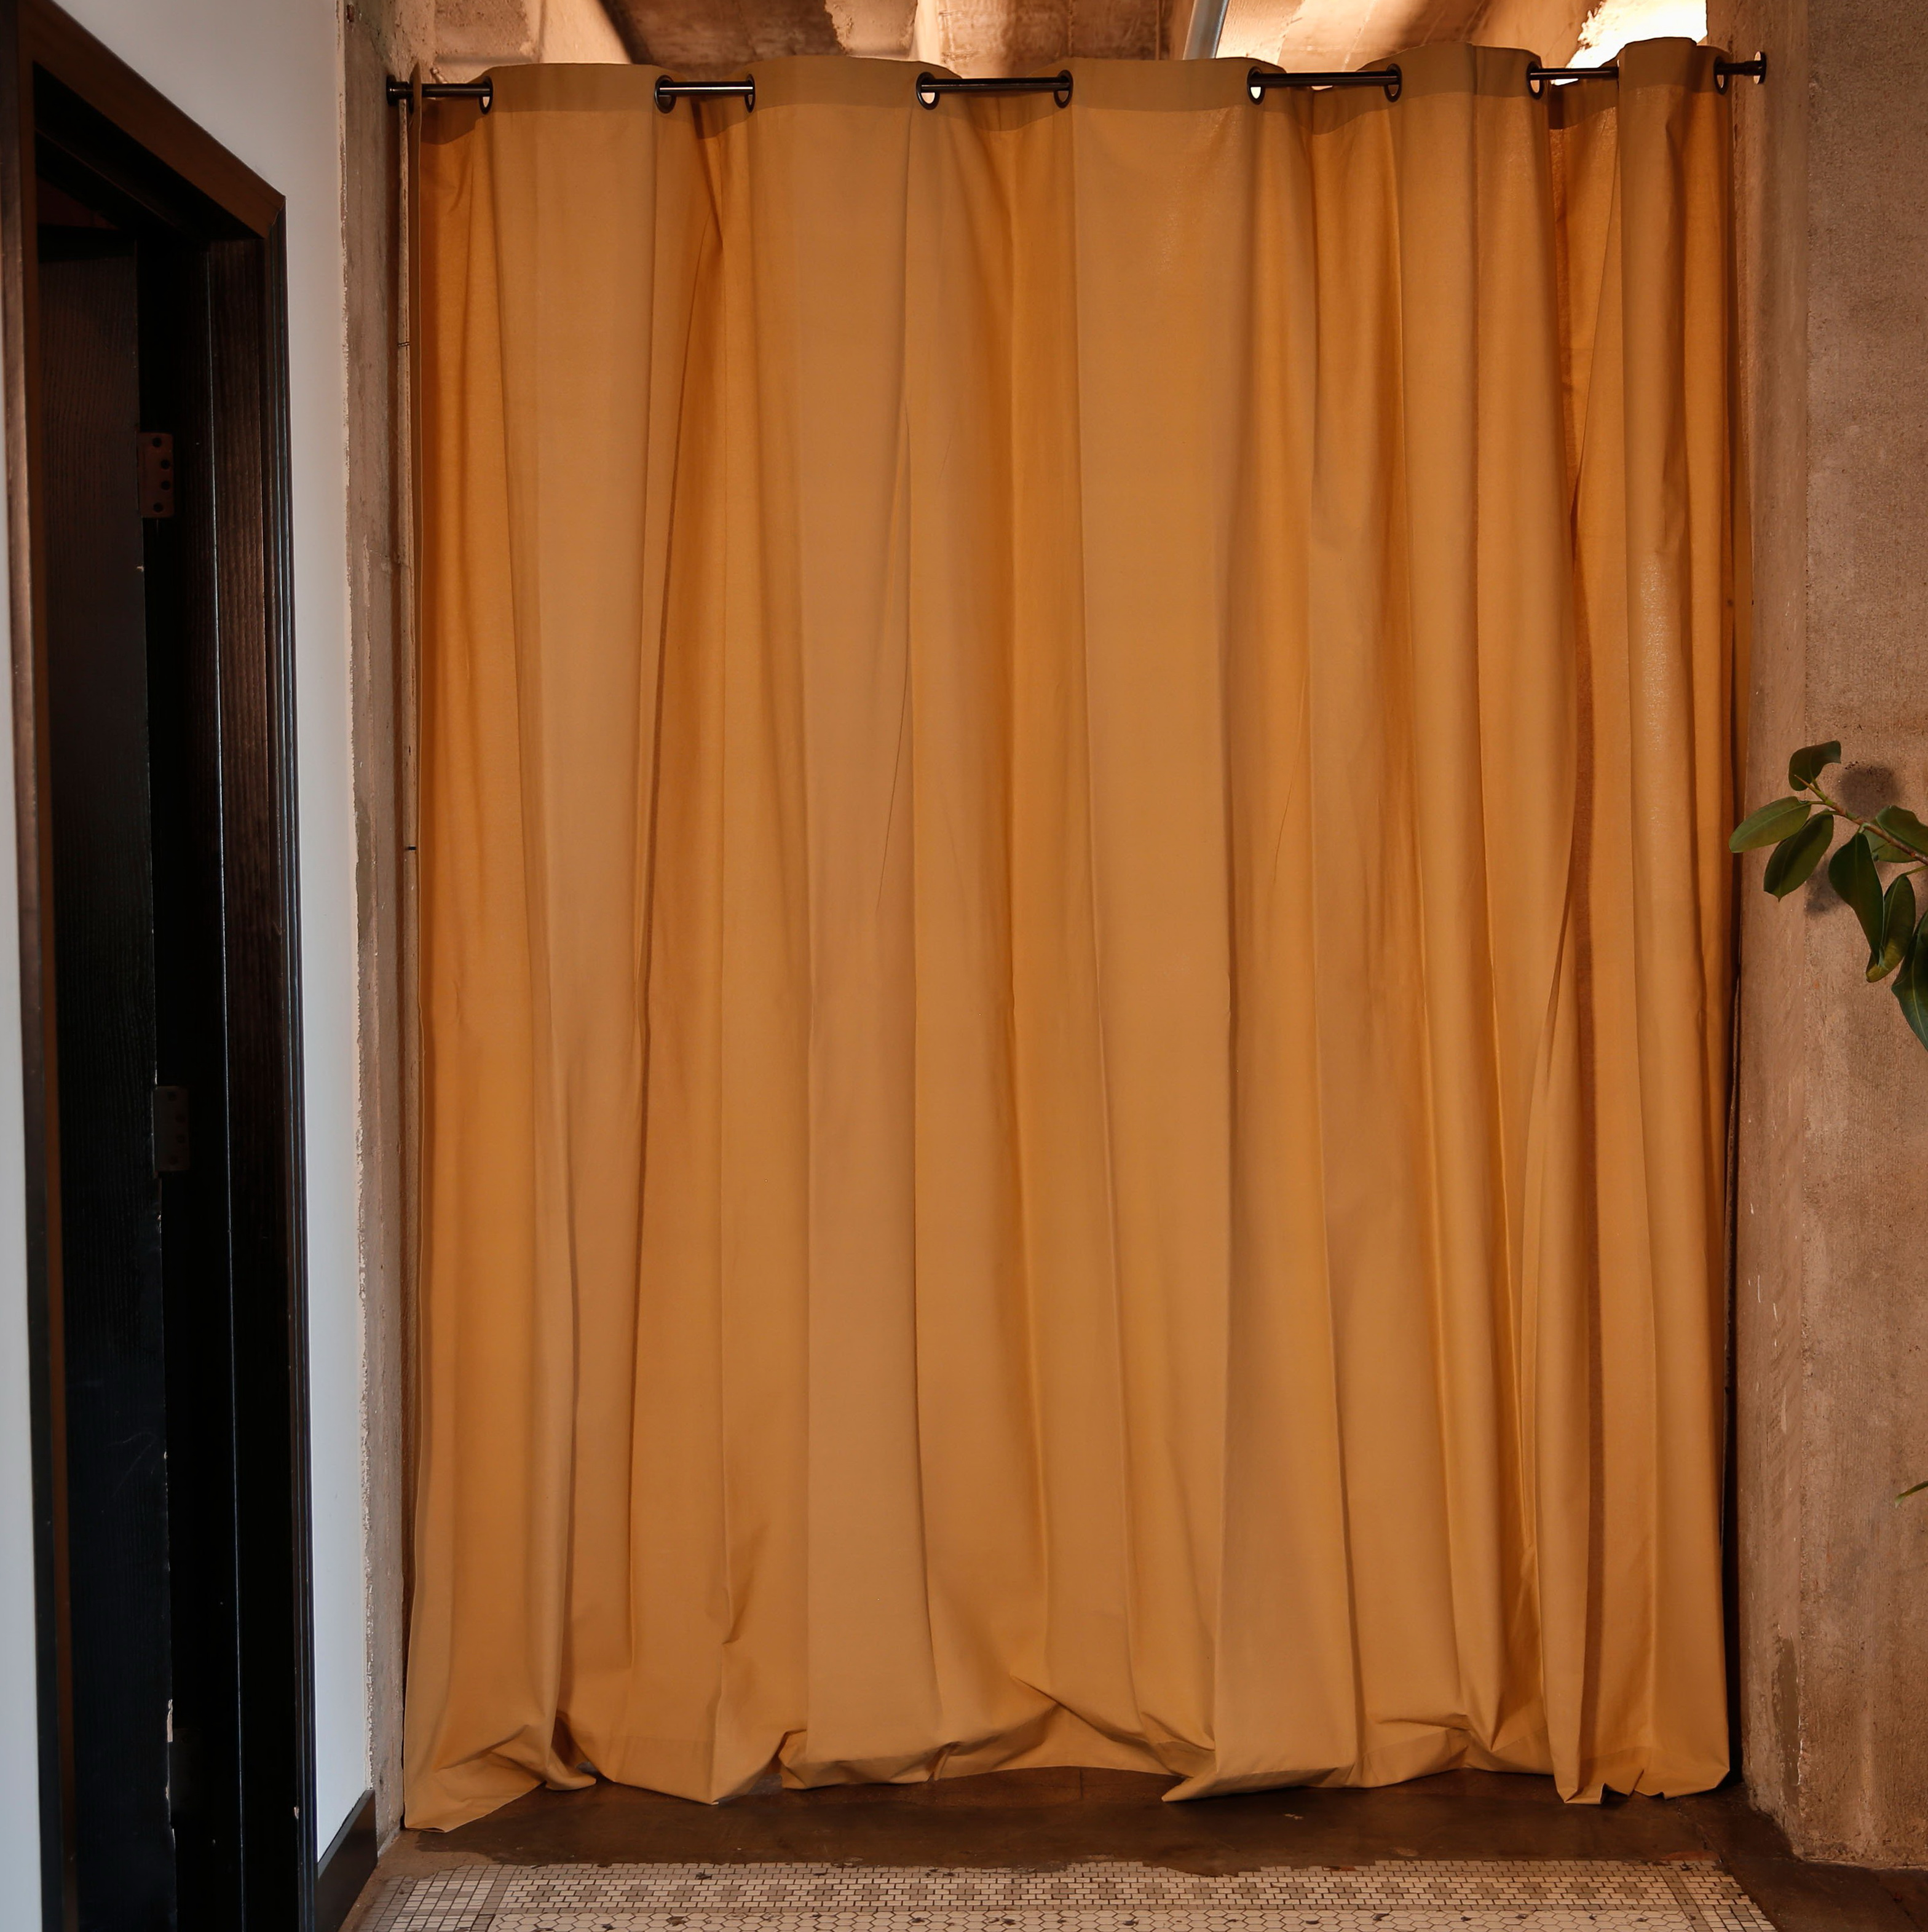 Dorm Room Curtain Dividers